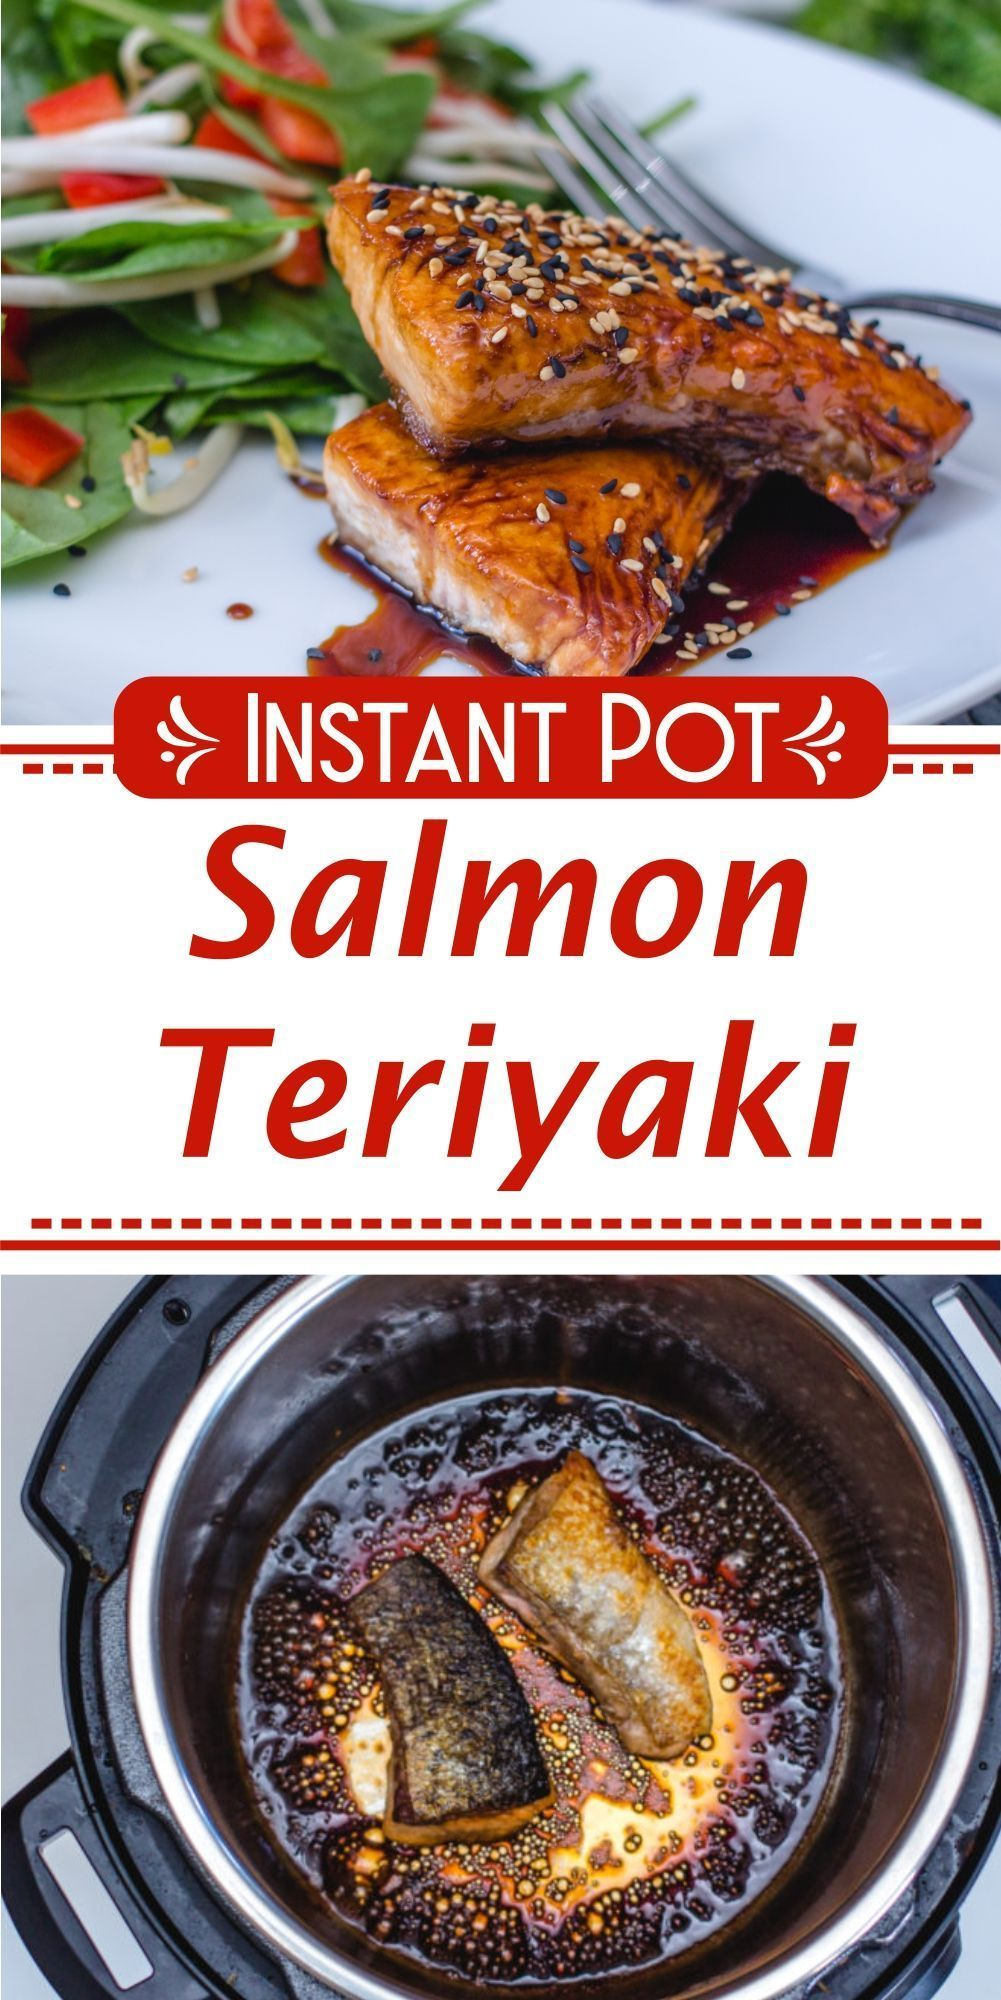 Instant Pot Salmon Teriyaki #salmonteriyaki Instant Pot Salmon Teriyaki | Pressure Cooker Salmon Teriyaki | Slow Cooker Salmon Teriyaki |   Easy Salmon Teriyaki Recipe | Crock Pot Salmon Teriyaki | One Pot Salmon Teriyaki | How To Make Salmon Teriyaki |   Homemade Salmon Teriyaki | Salmon Teriyaki recipe | Instapot Salmon Teriyaki  #dinner #maindish #salmon #teriyaki #instantpot #recipe #corriecooks #salmonteriyaki Instant Pot Salmon Teriyaki #salmonteriyaki Instant Pot Salmon Teriyaki | Pressur #teriyakisalmon